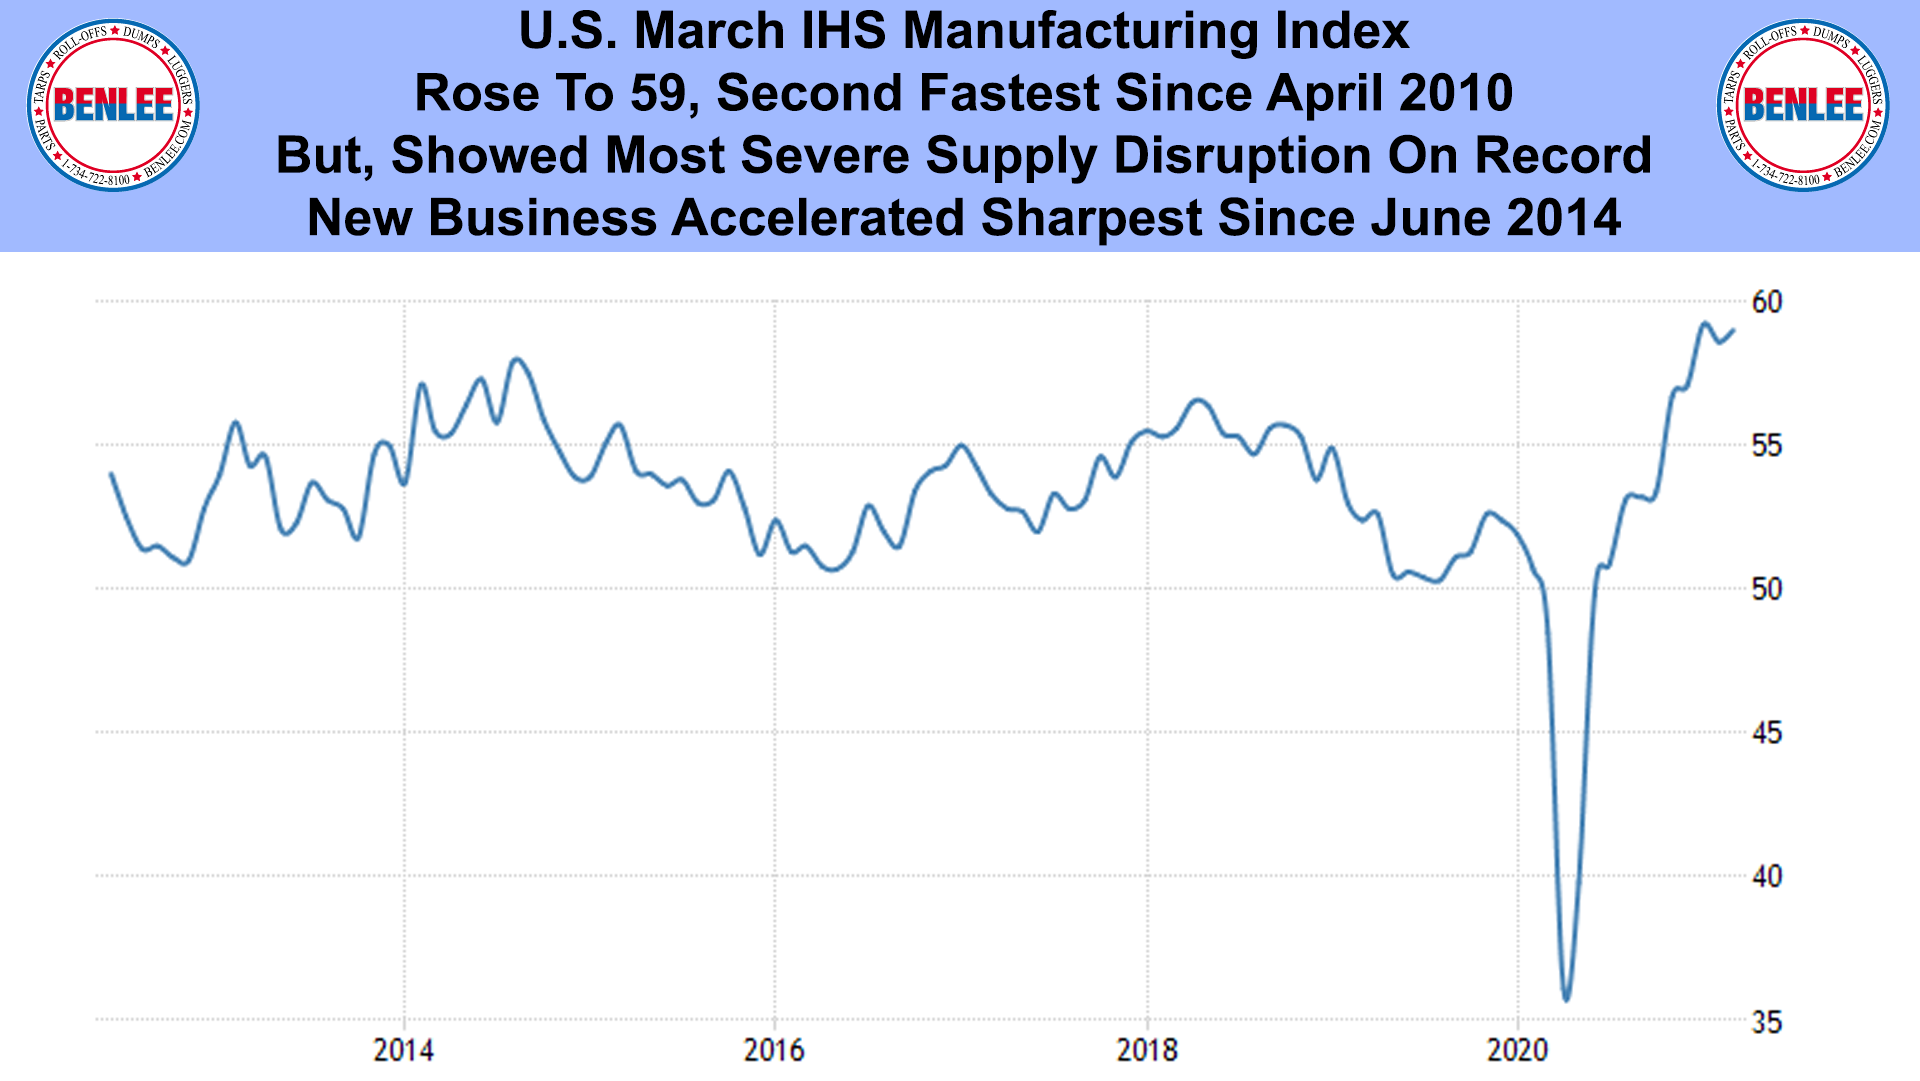 U.S. March IHS Manufacturing Index